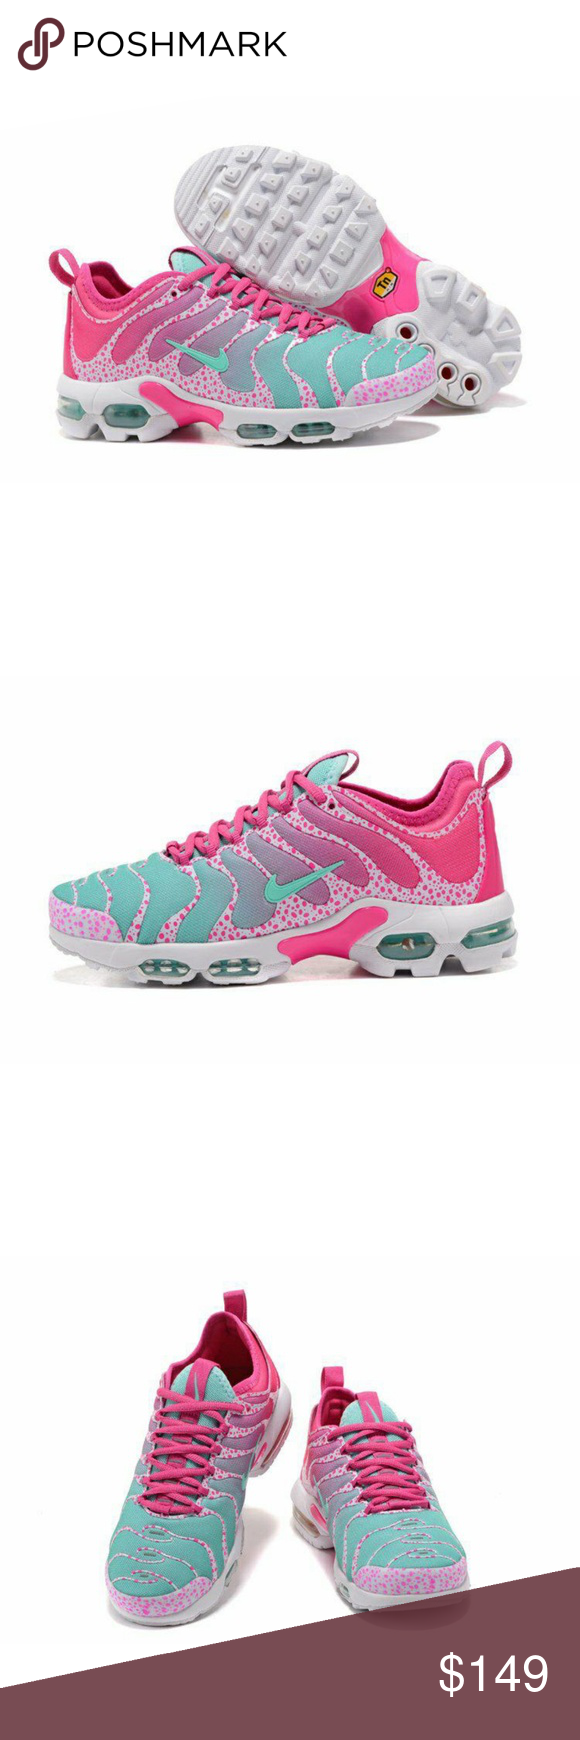 0812c0bbc5a86 Nike Air Max Plus TN Ultra New Arrivel Nike Air Max Plus TN Ultra Pink Blue  White 881560 438 Women s Running Shoes Sneakers Nike Shoes Sneakers